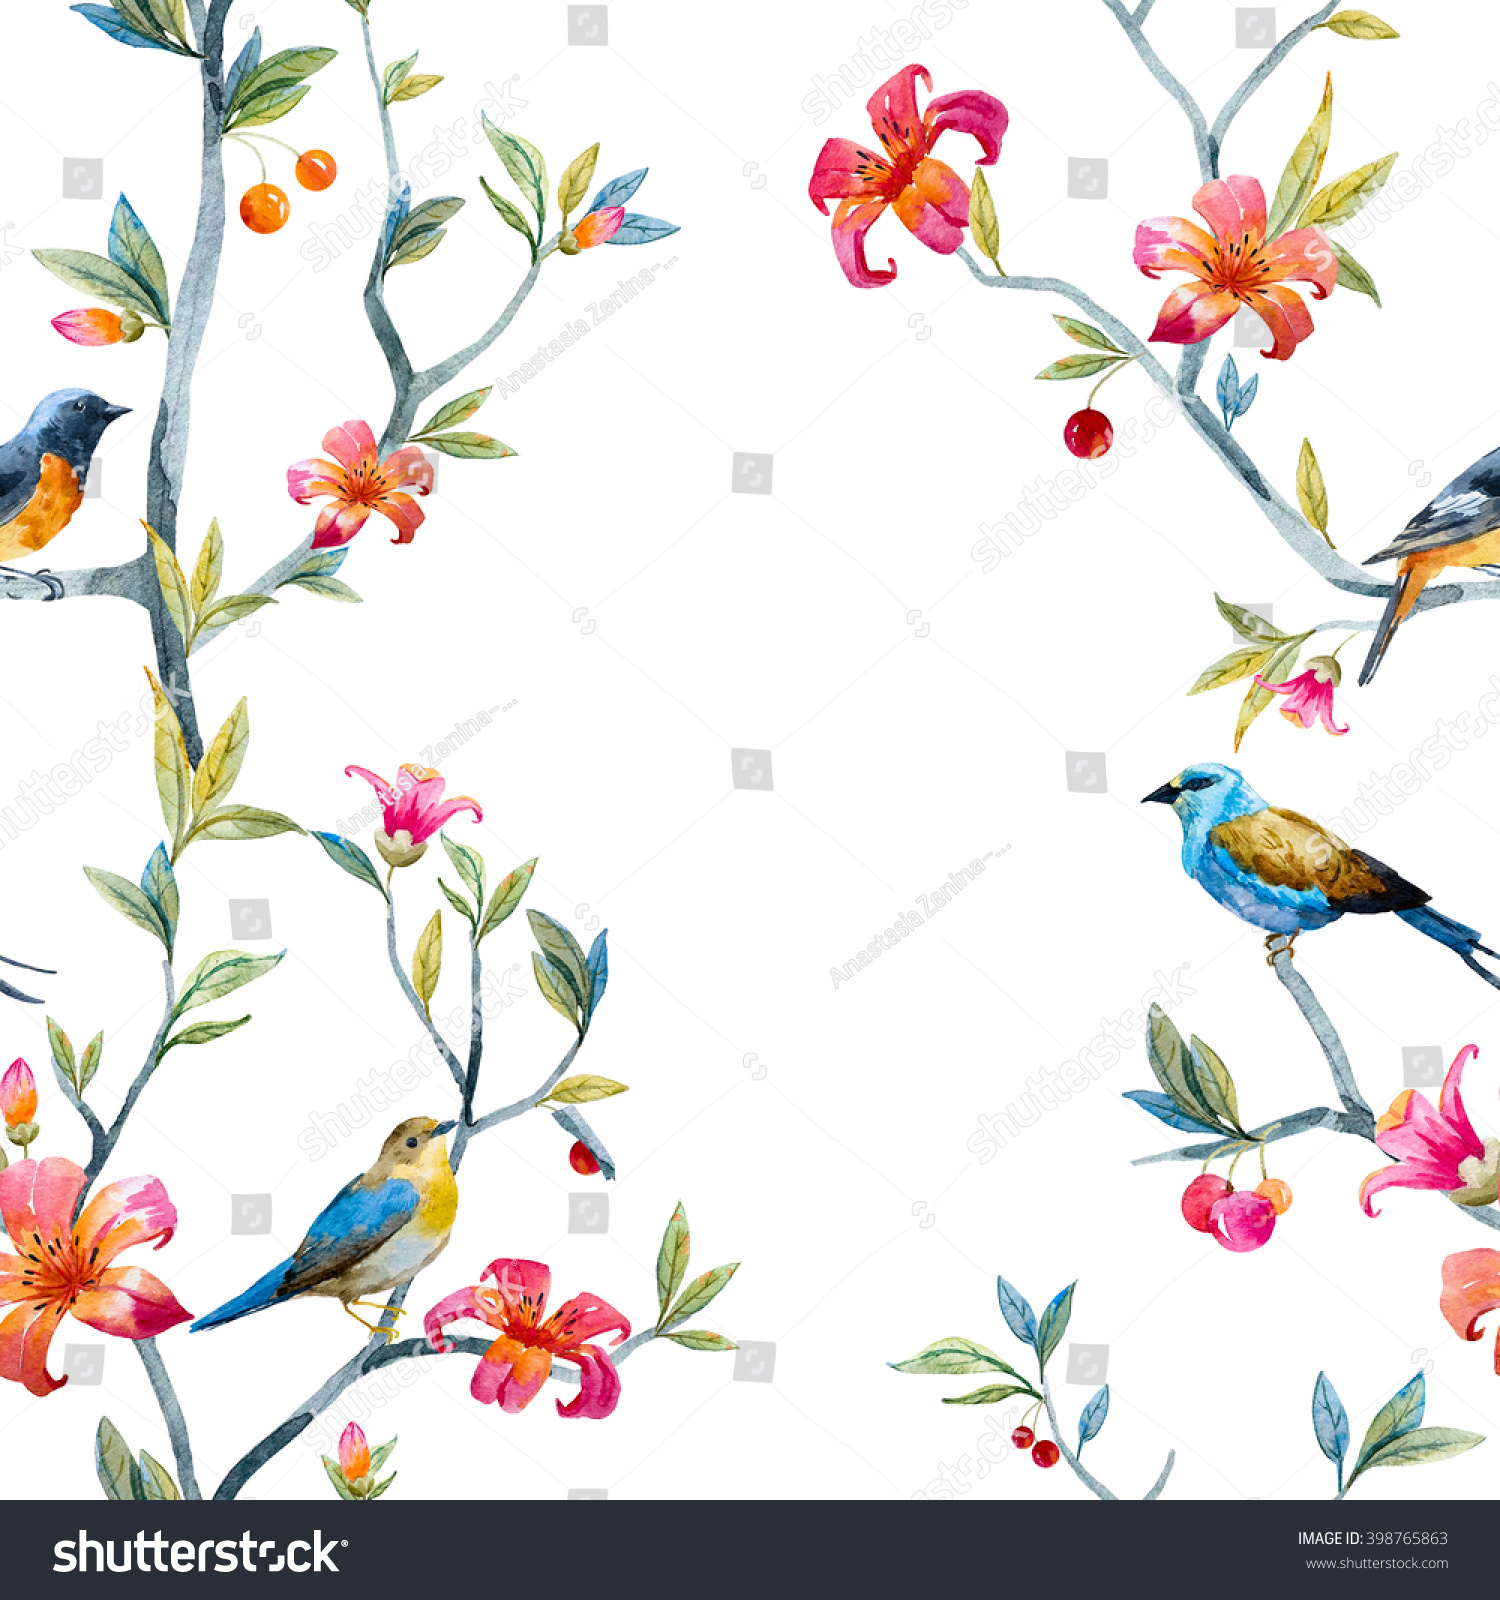 watercolor seamless pattern birds flowers tree stock illustration